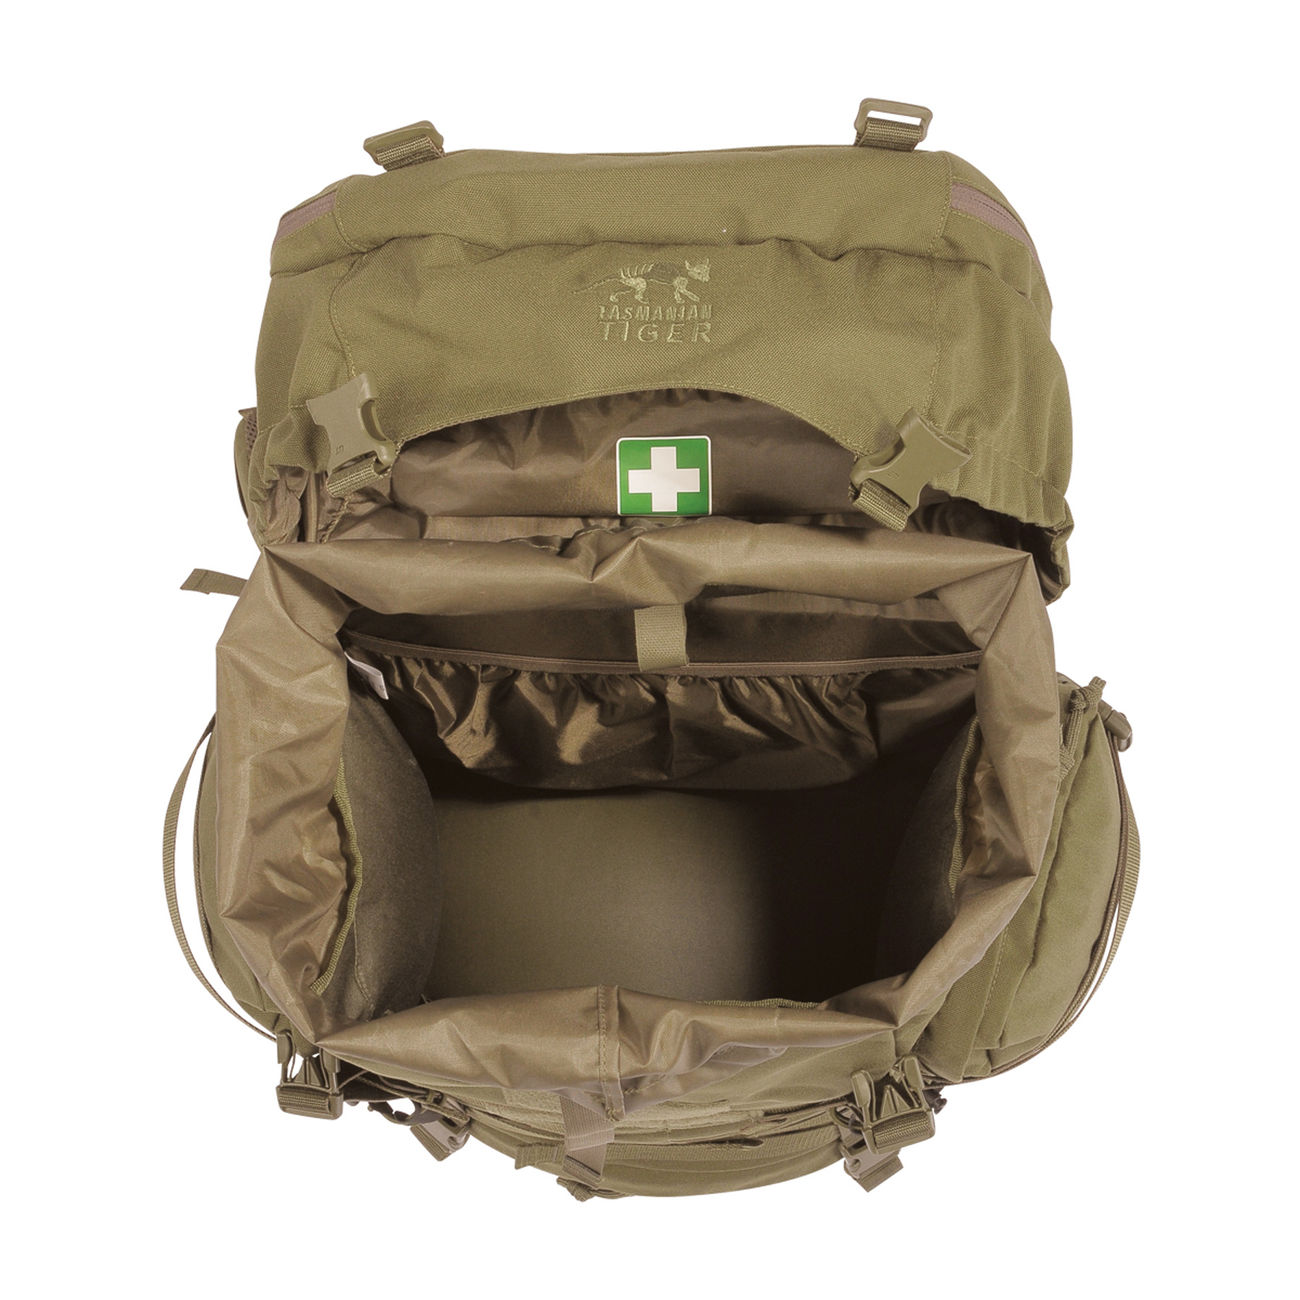 TT Rucksack Raid Pack MK III coyote brown 3